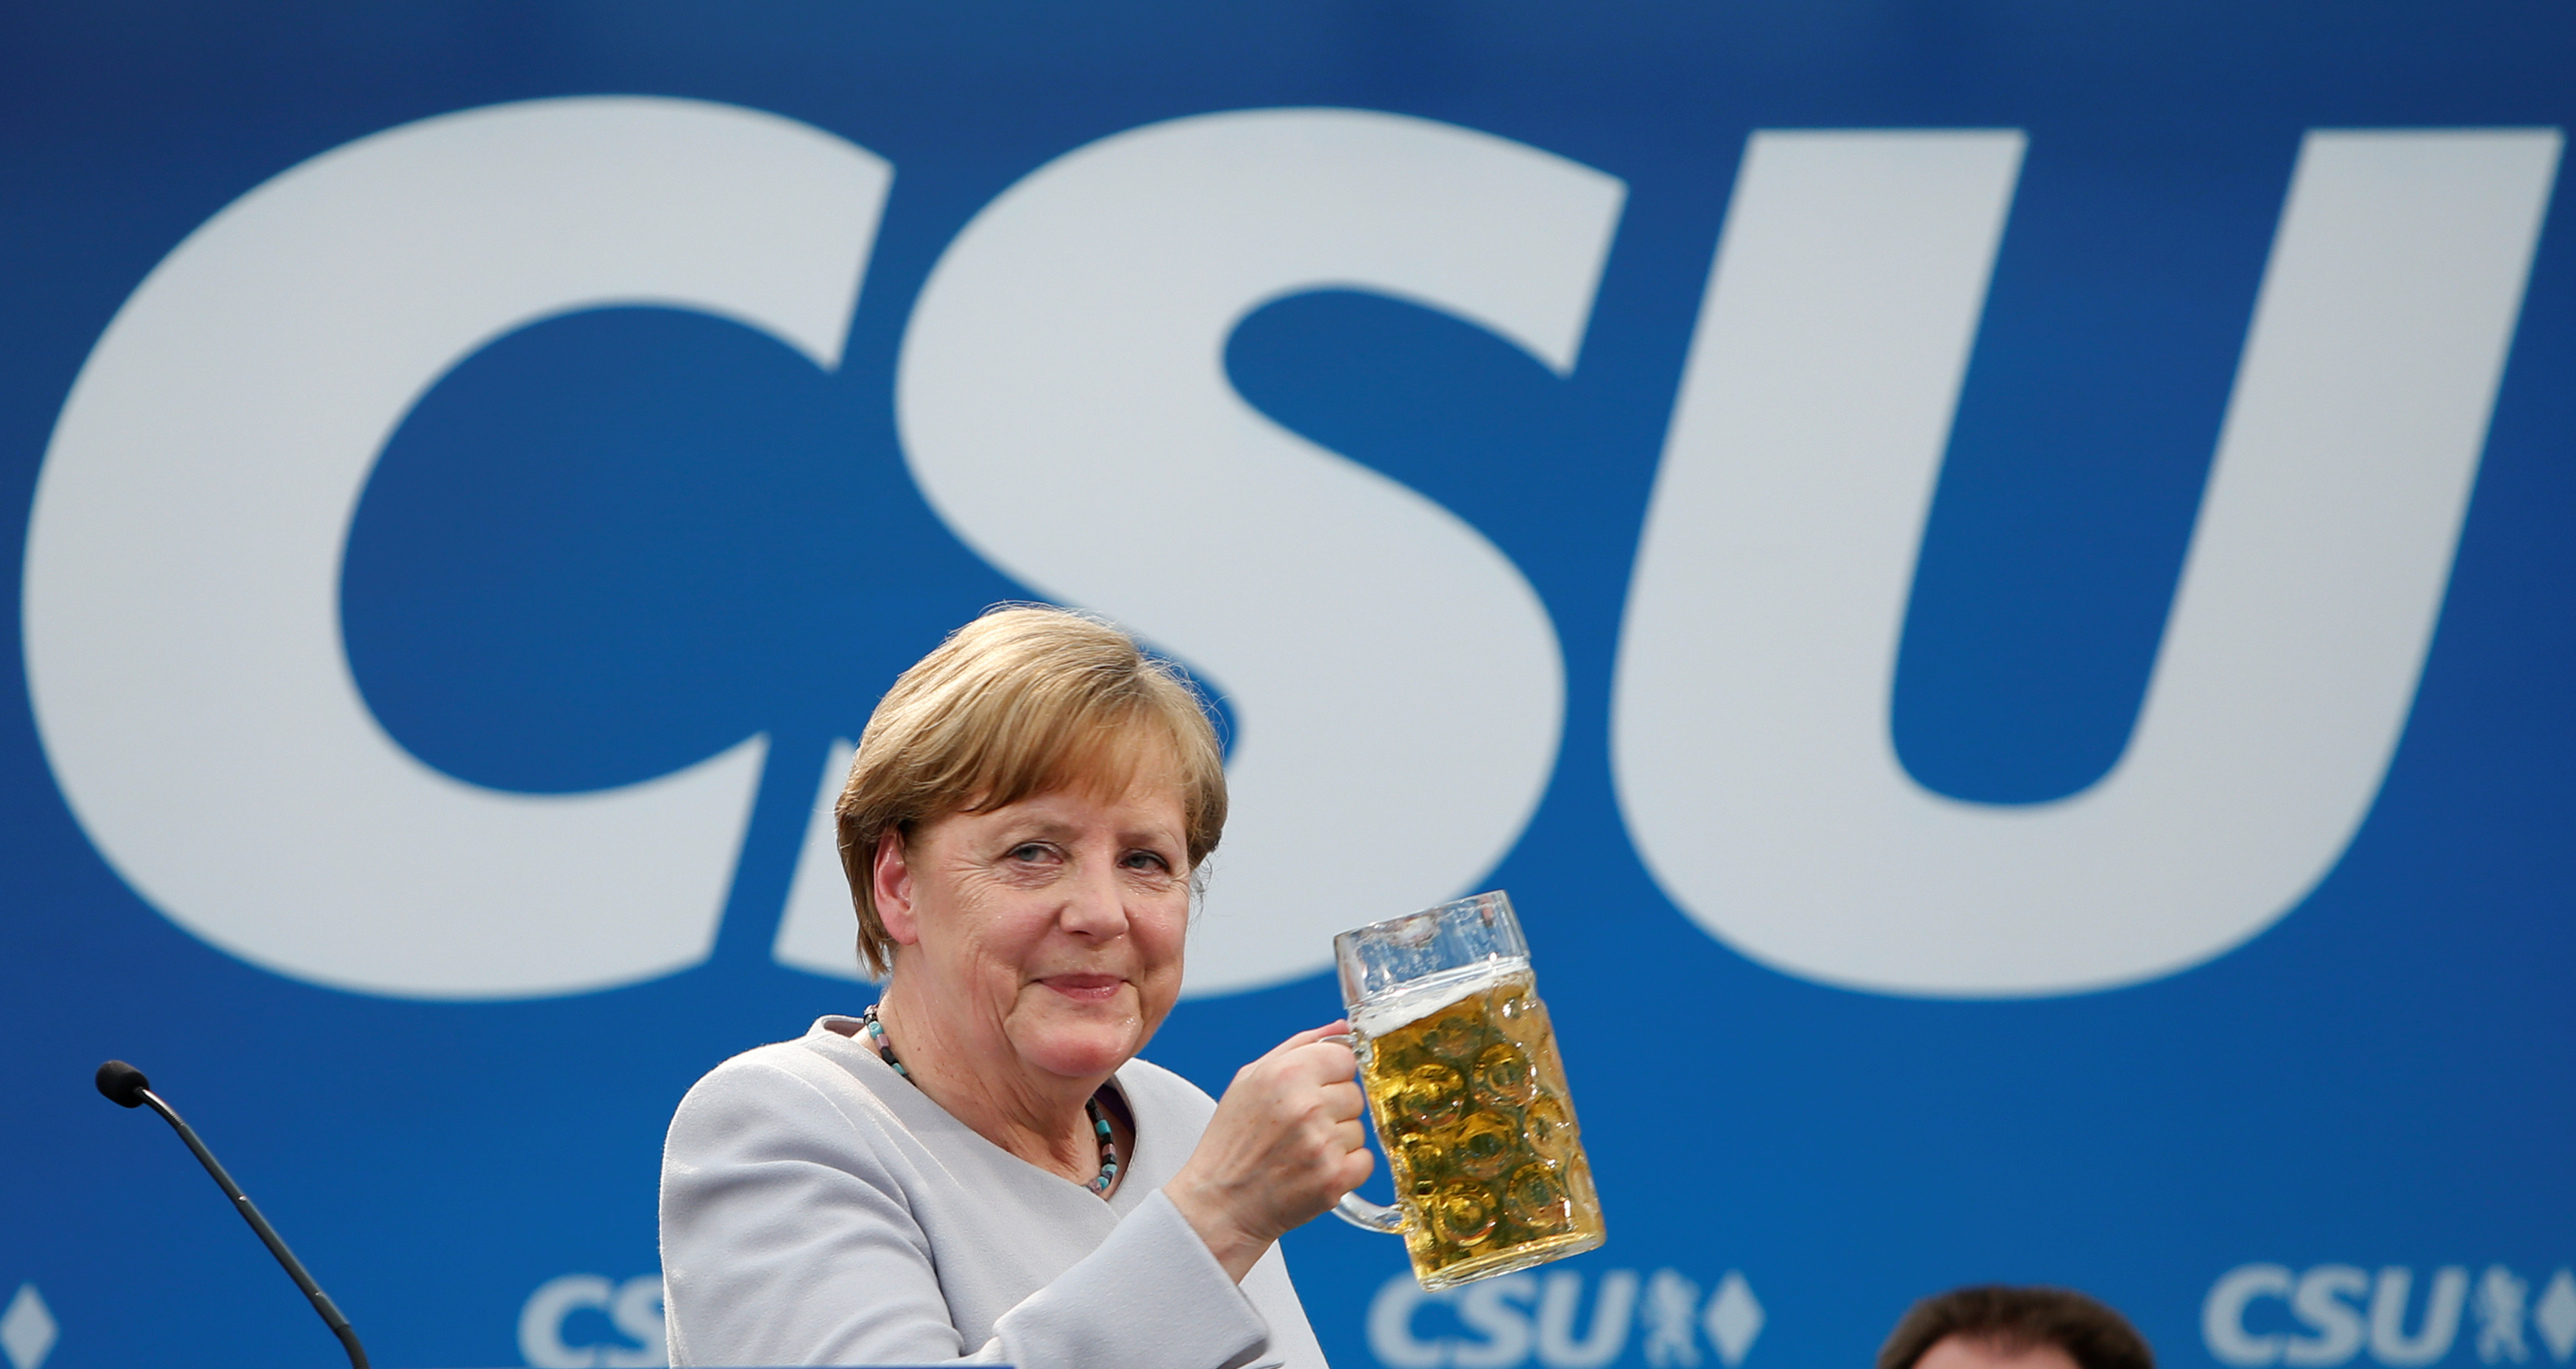 Merkel wasn't going it alone at the Munich beer hall.